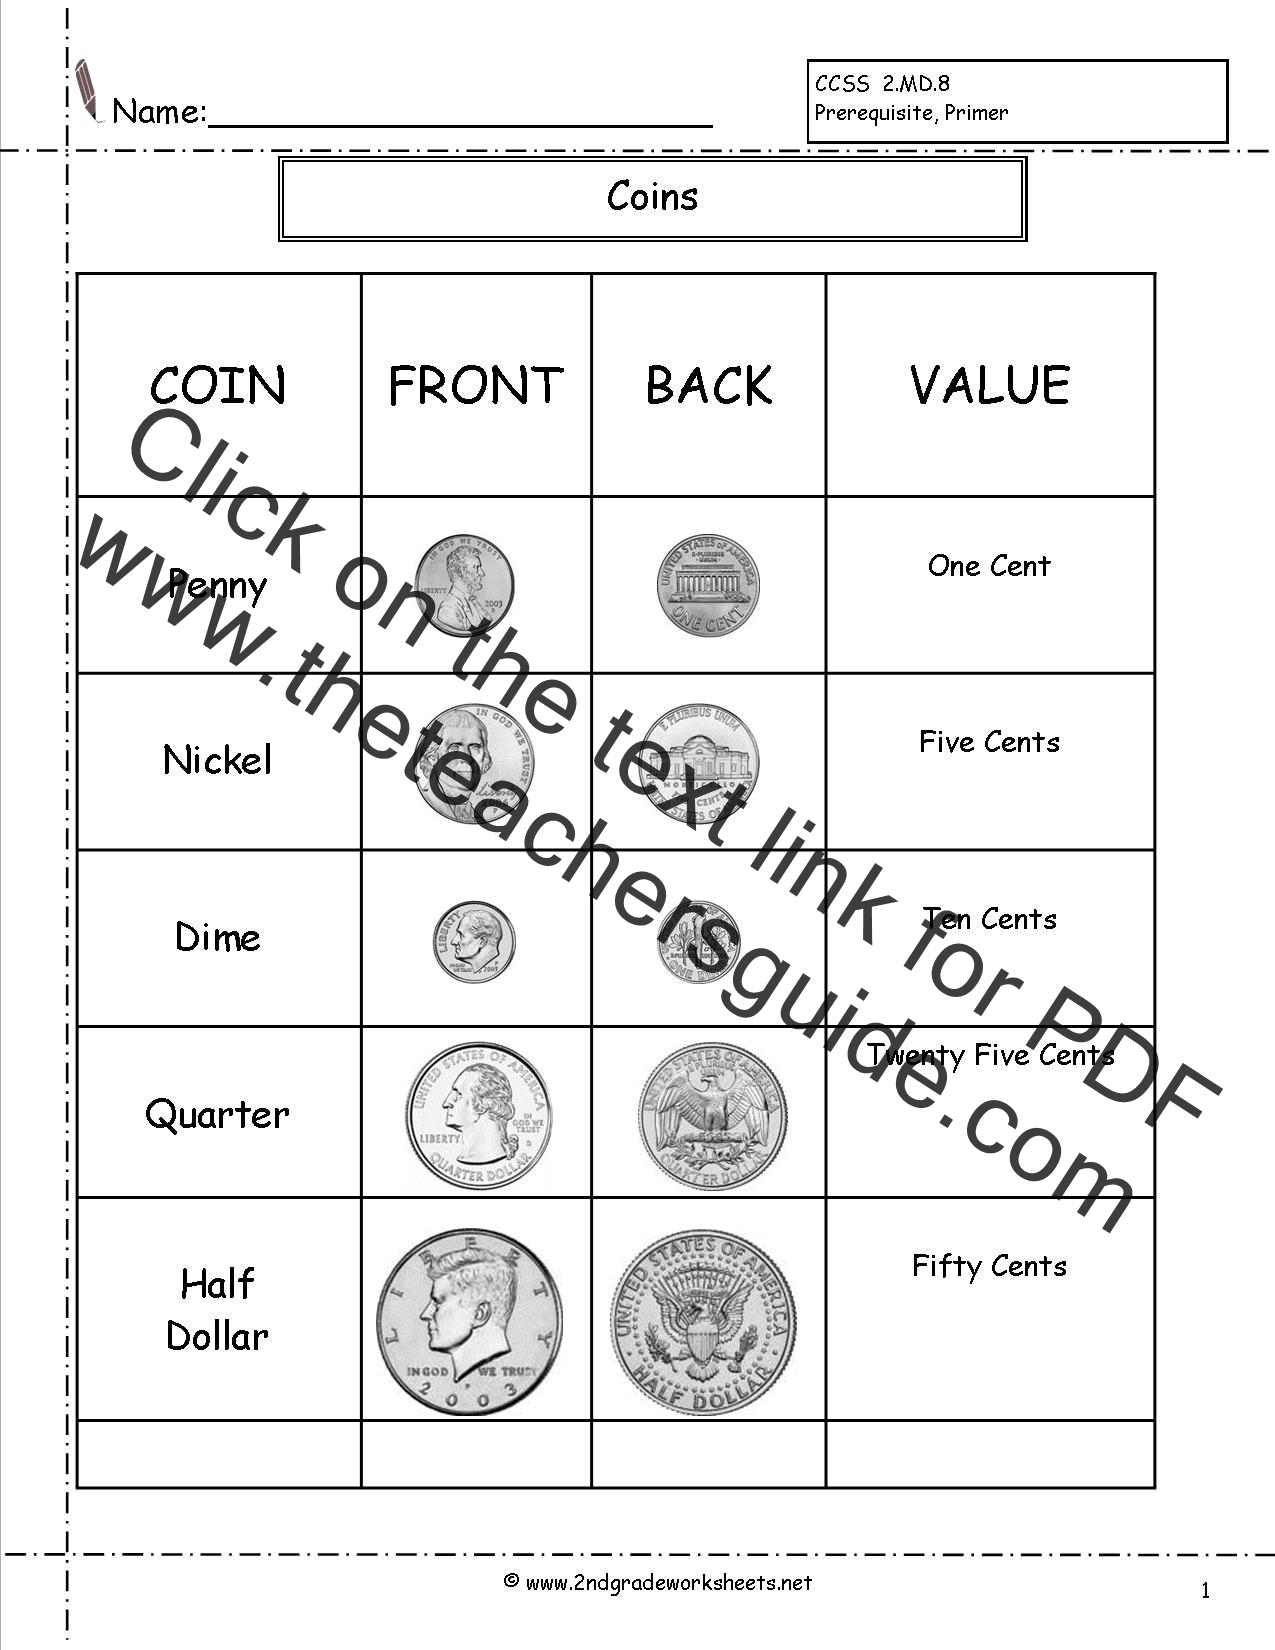 Worksheets Counting Coins Printable Worksheets counting coins and money worksheets printouts worksheet